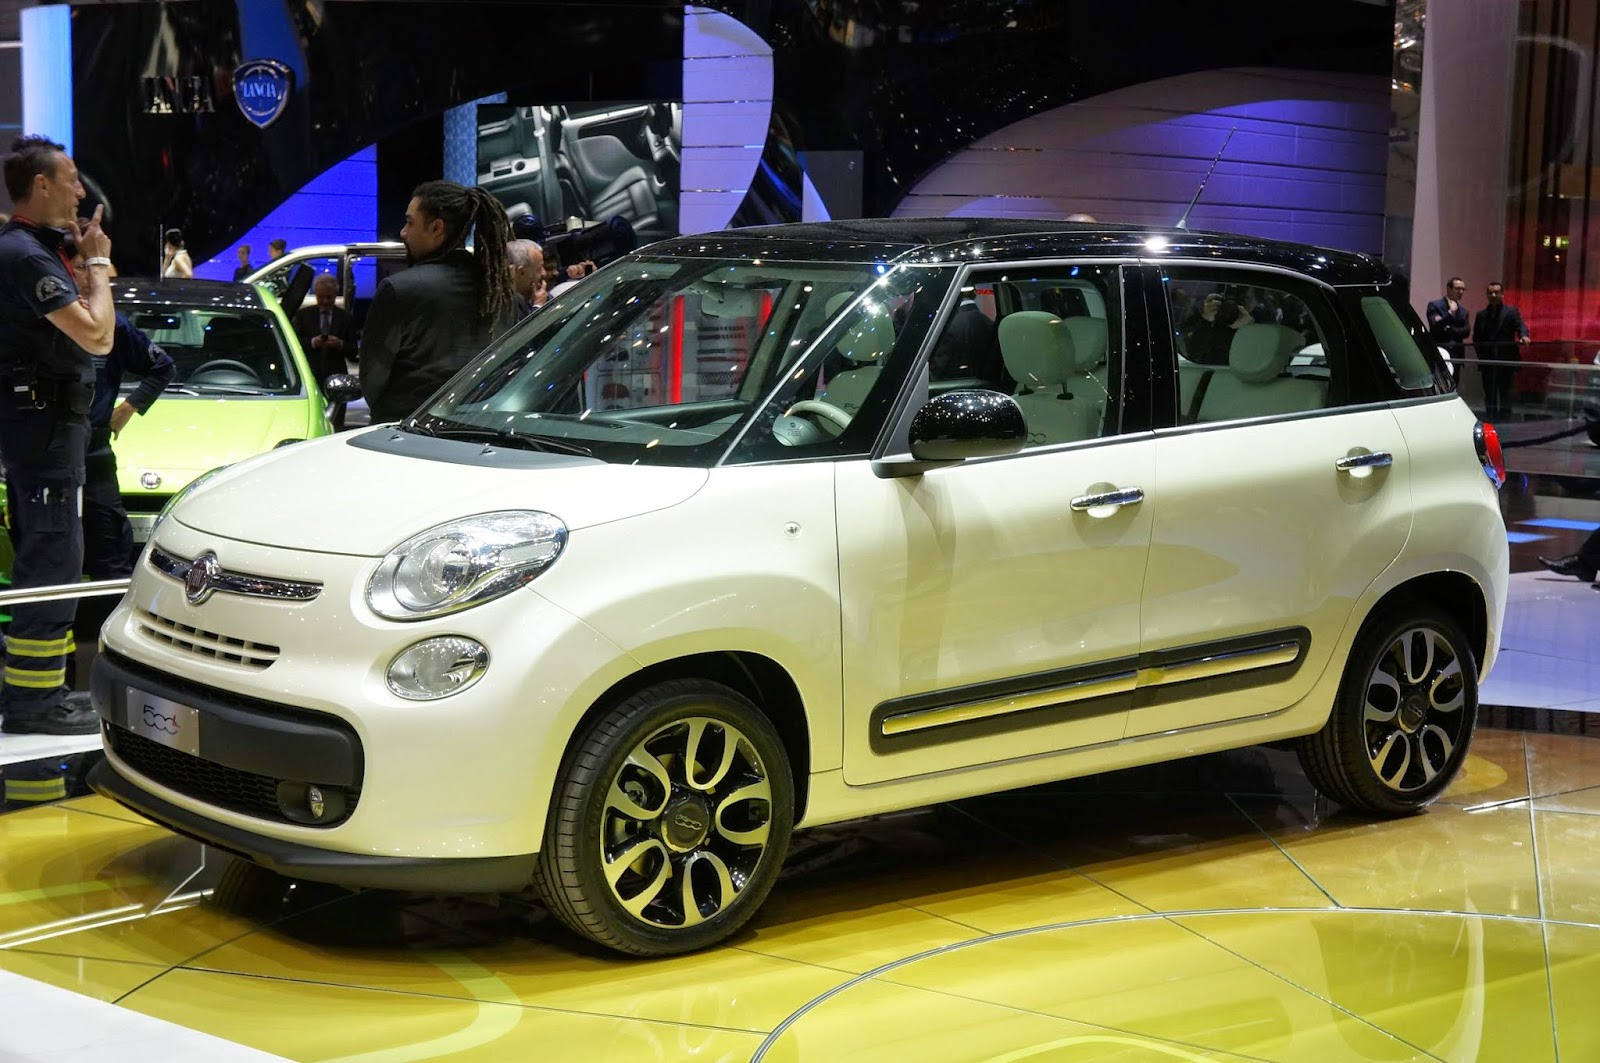 Fiat 500L in production from 2012